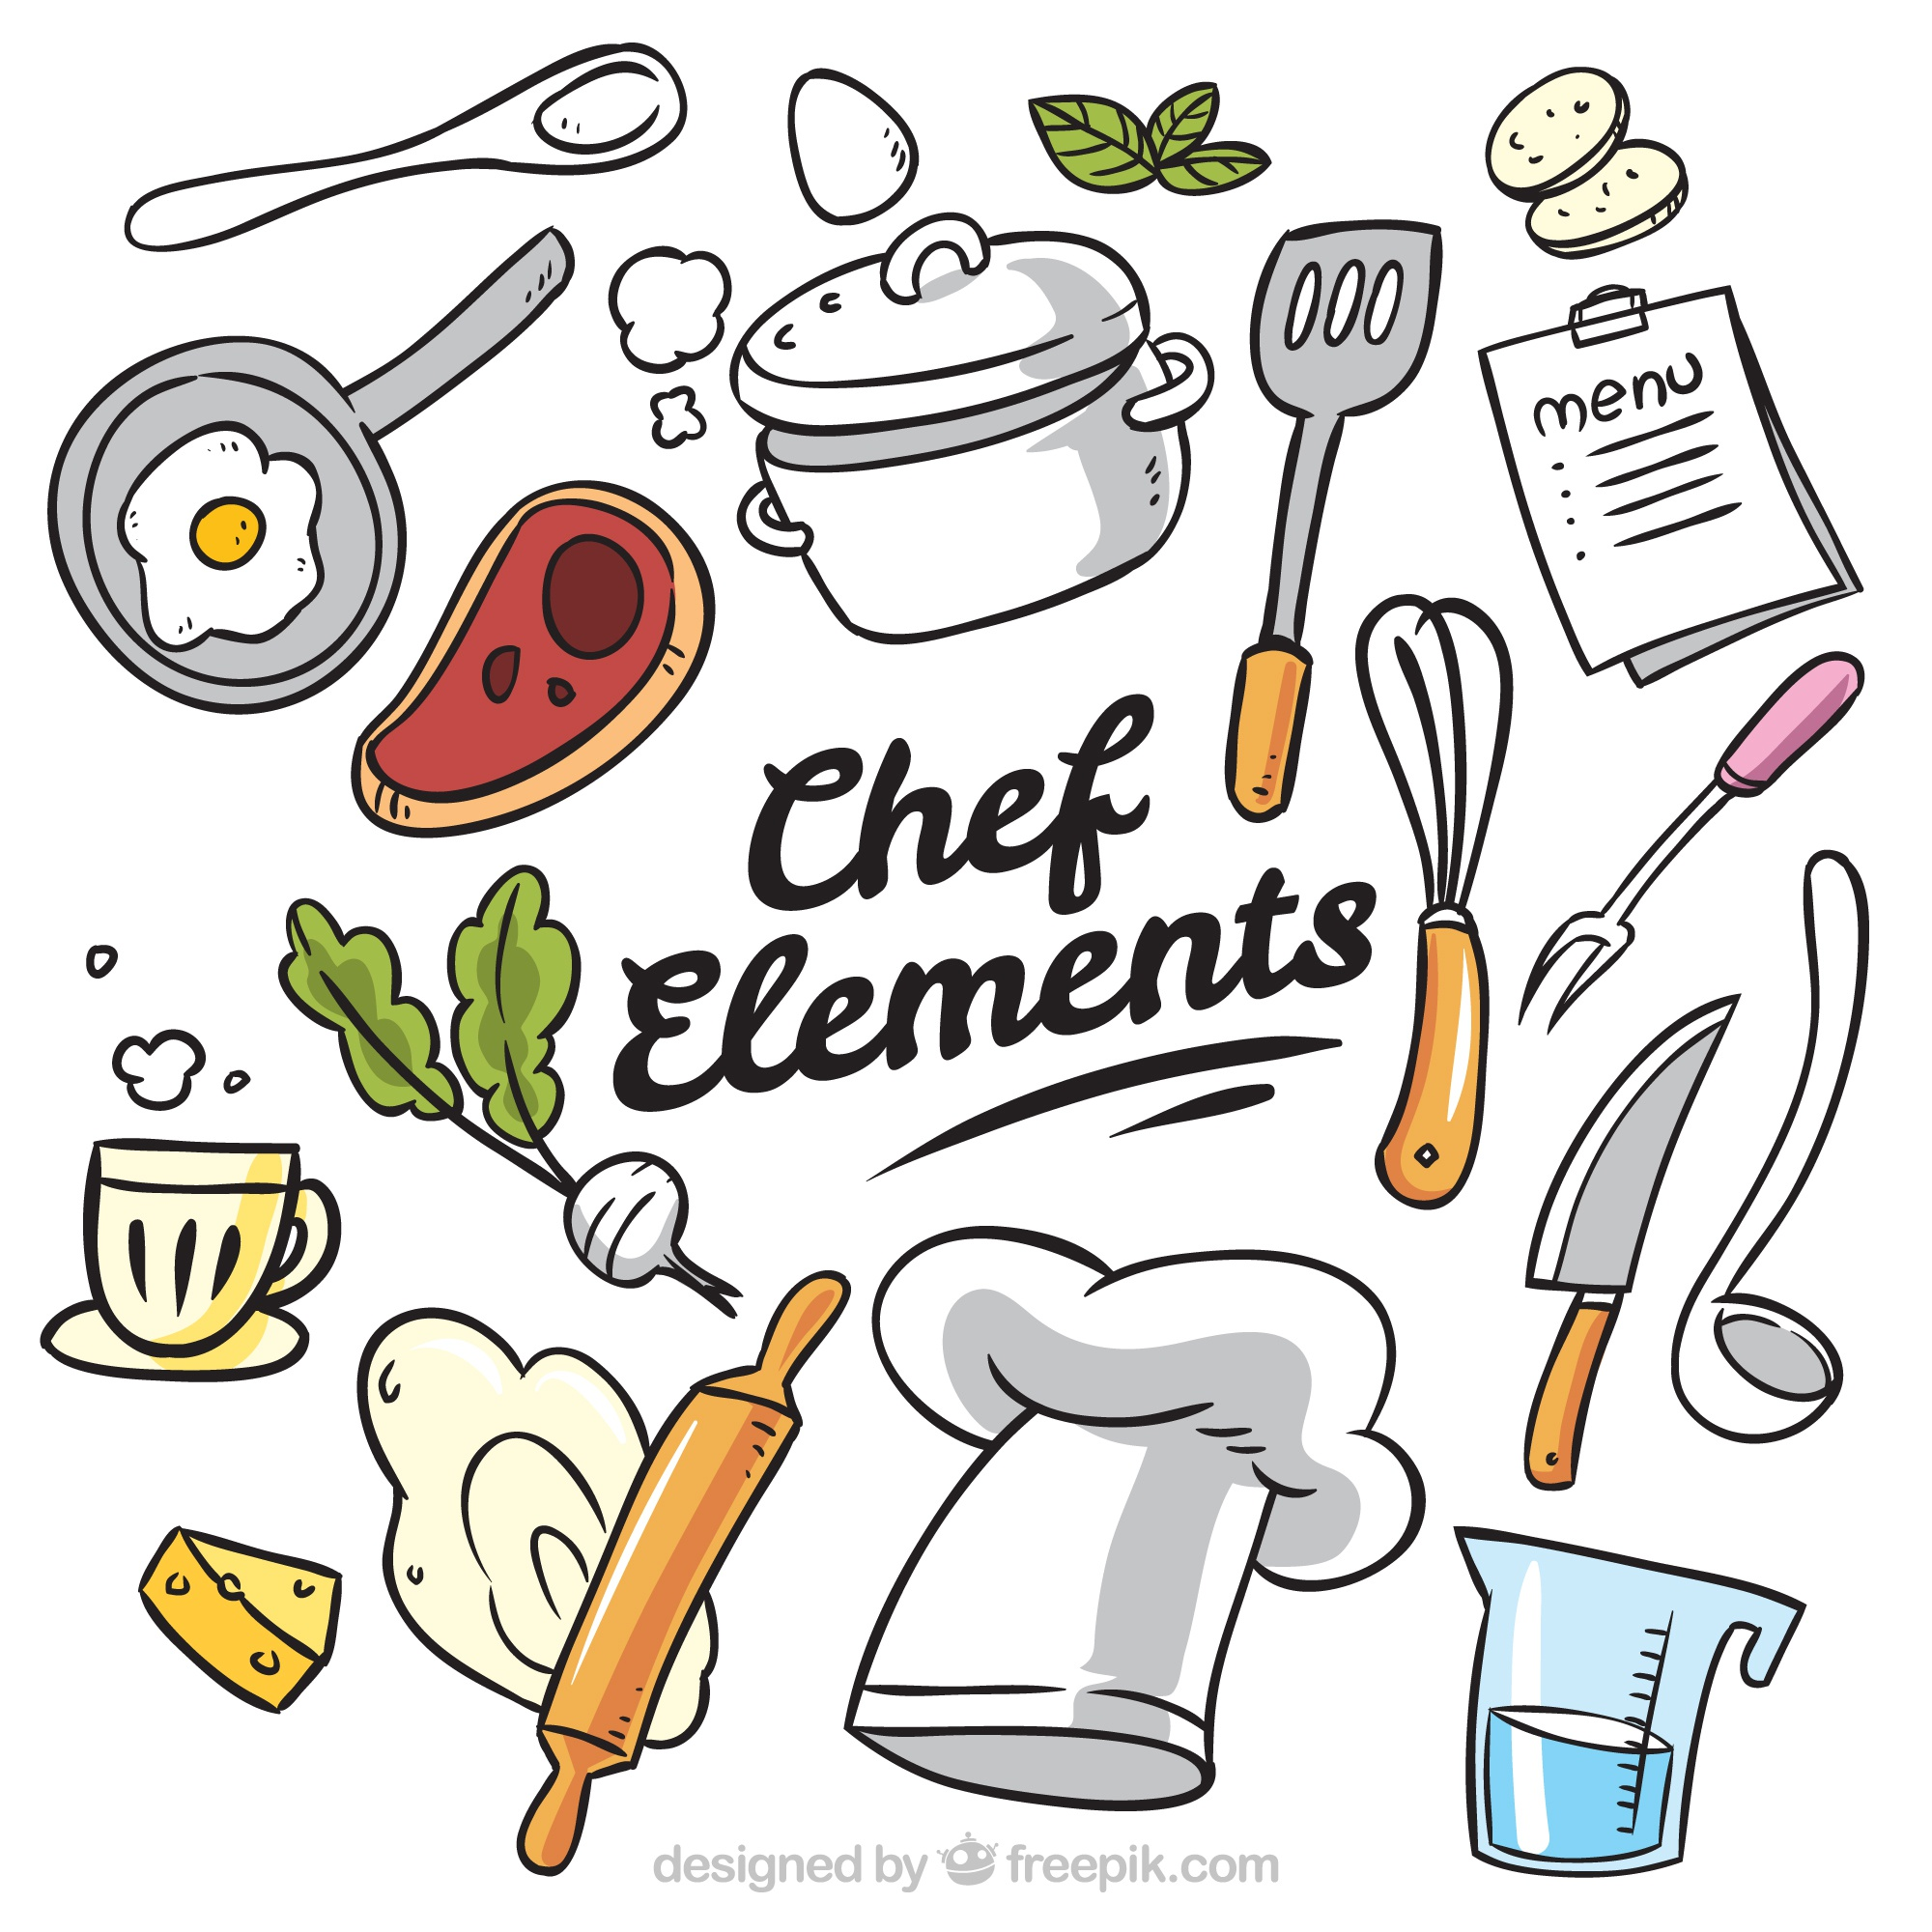 Great collection of hand-drawn chef items